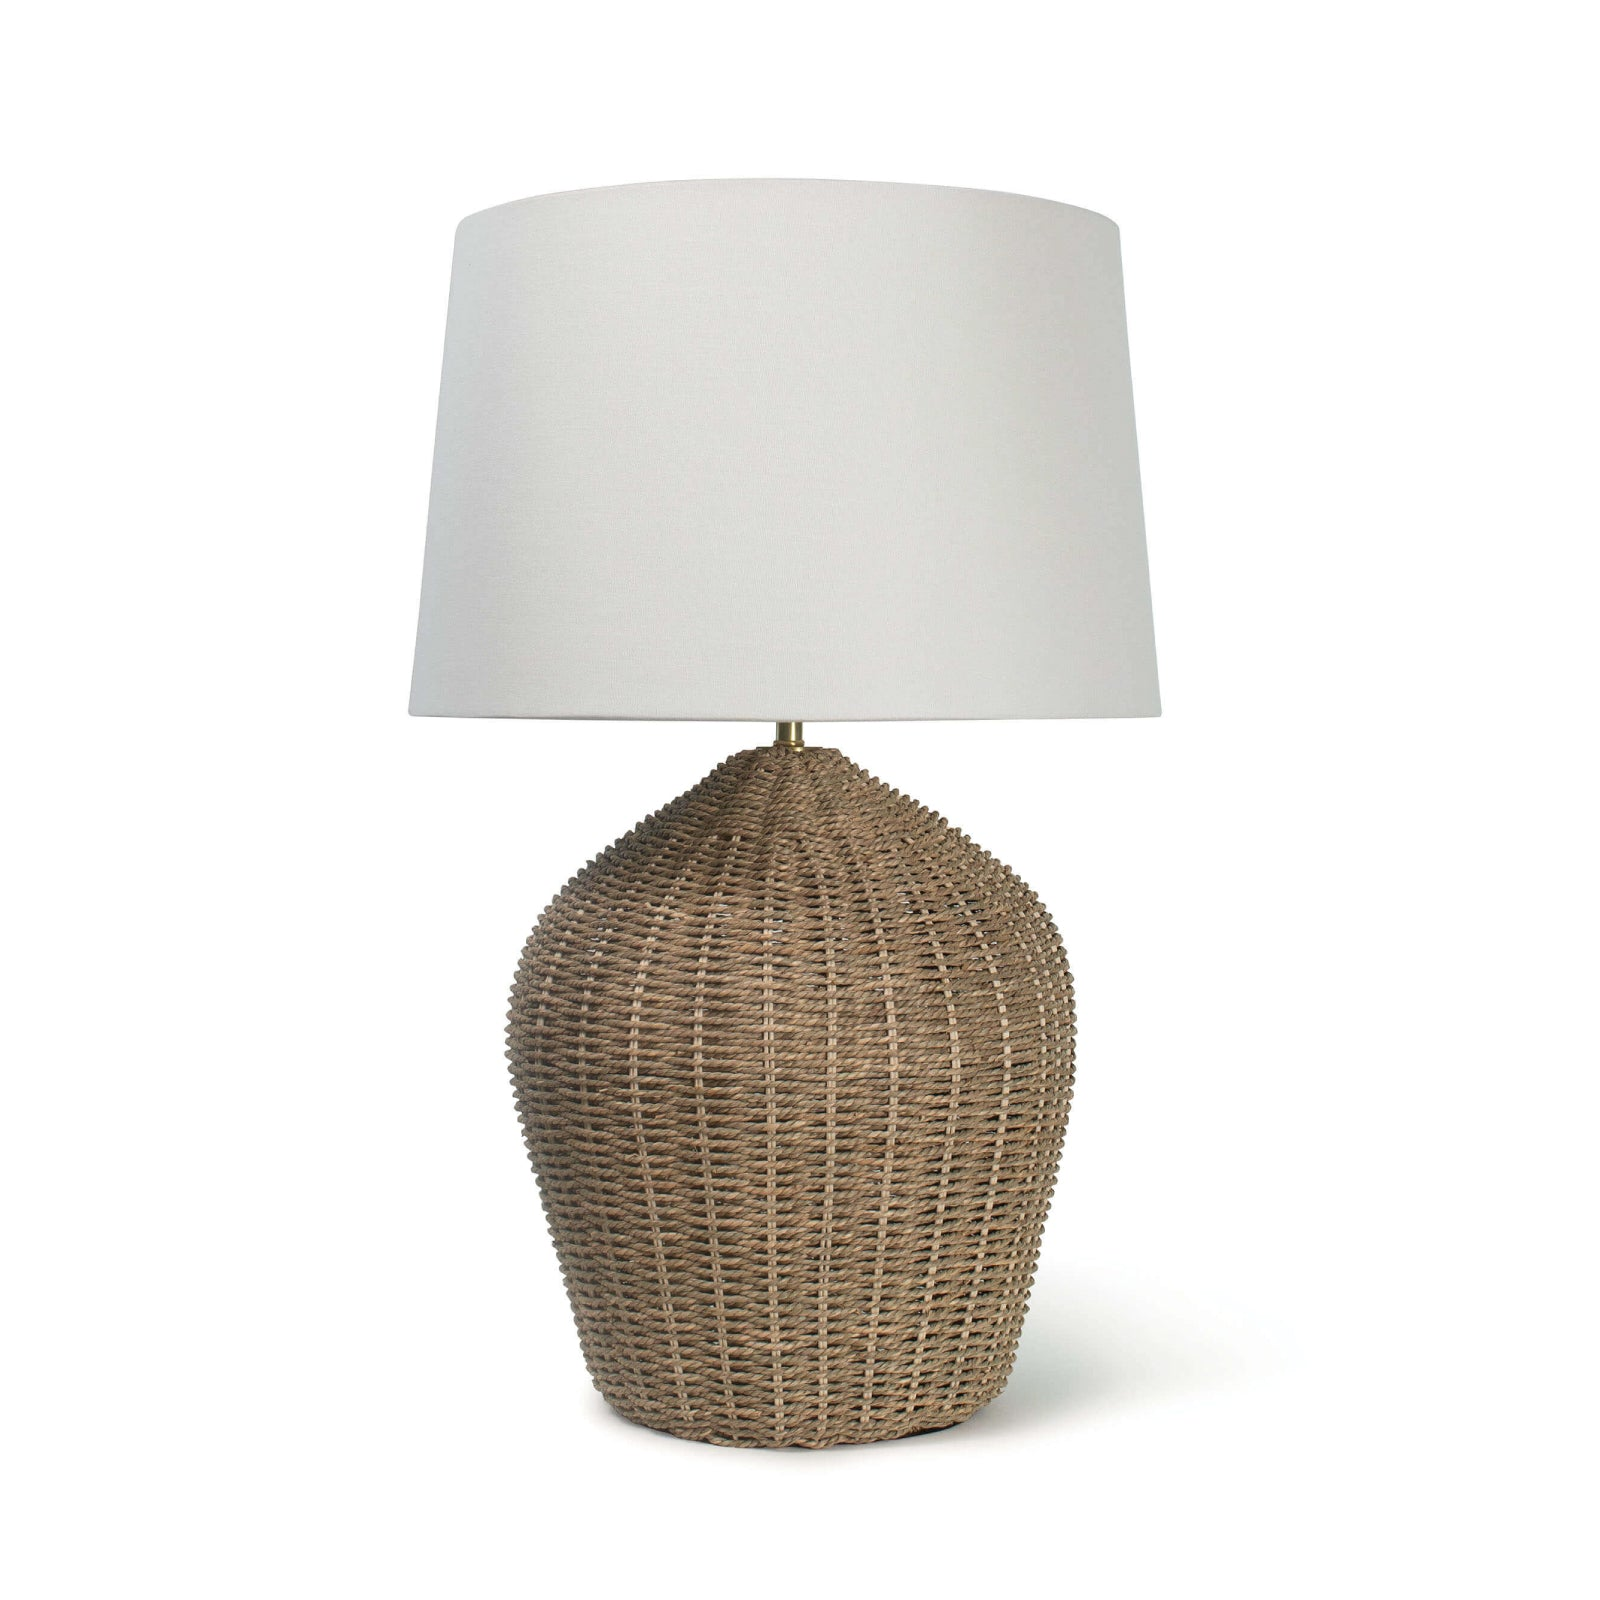 Westchester Lamp in Natural